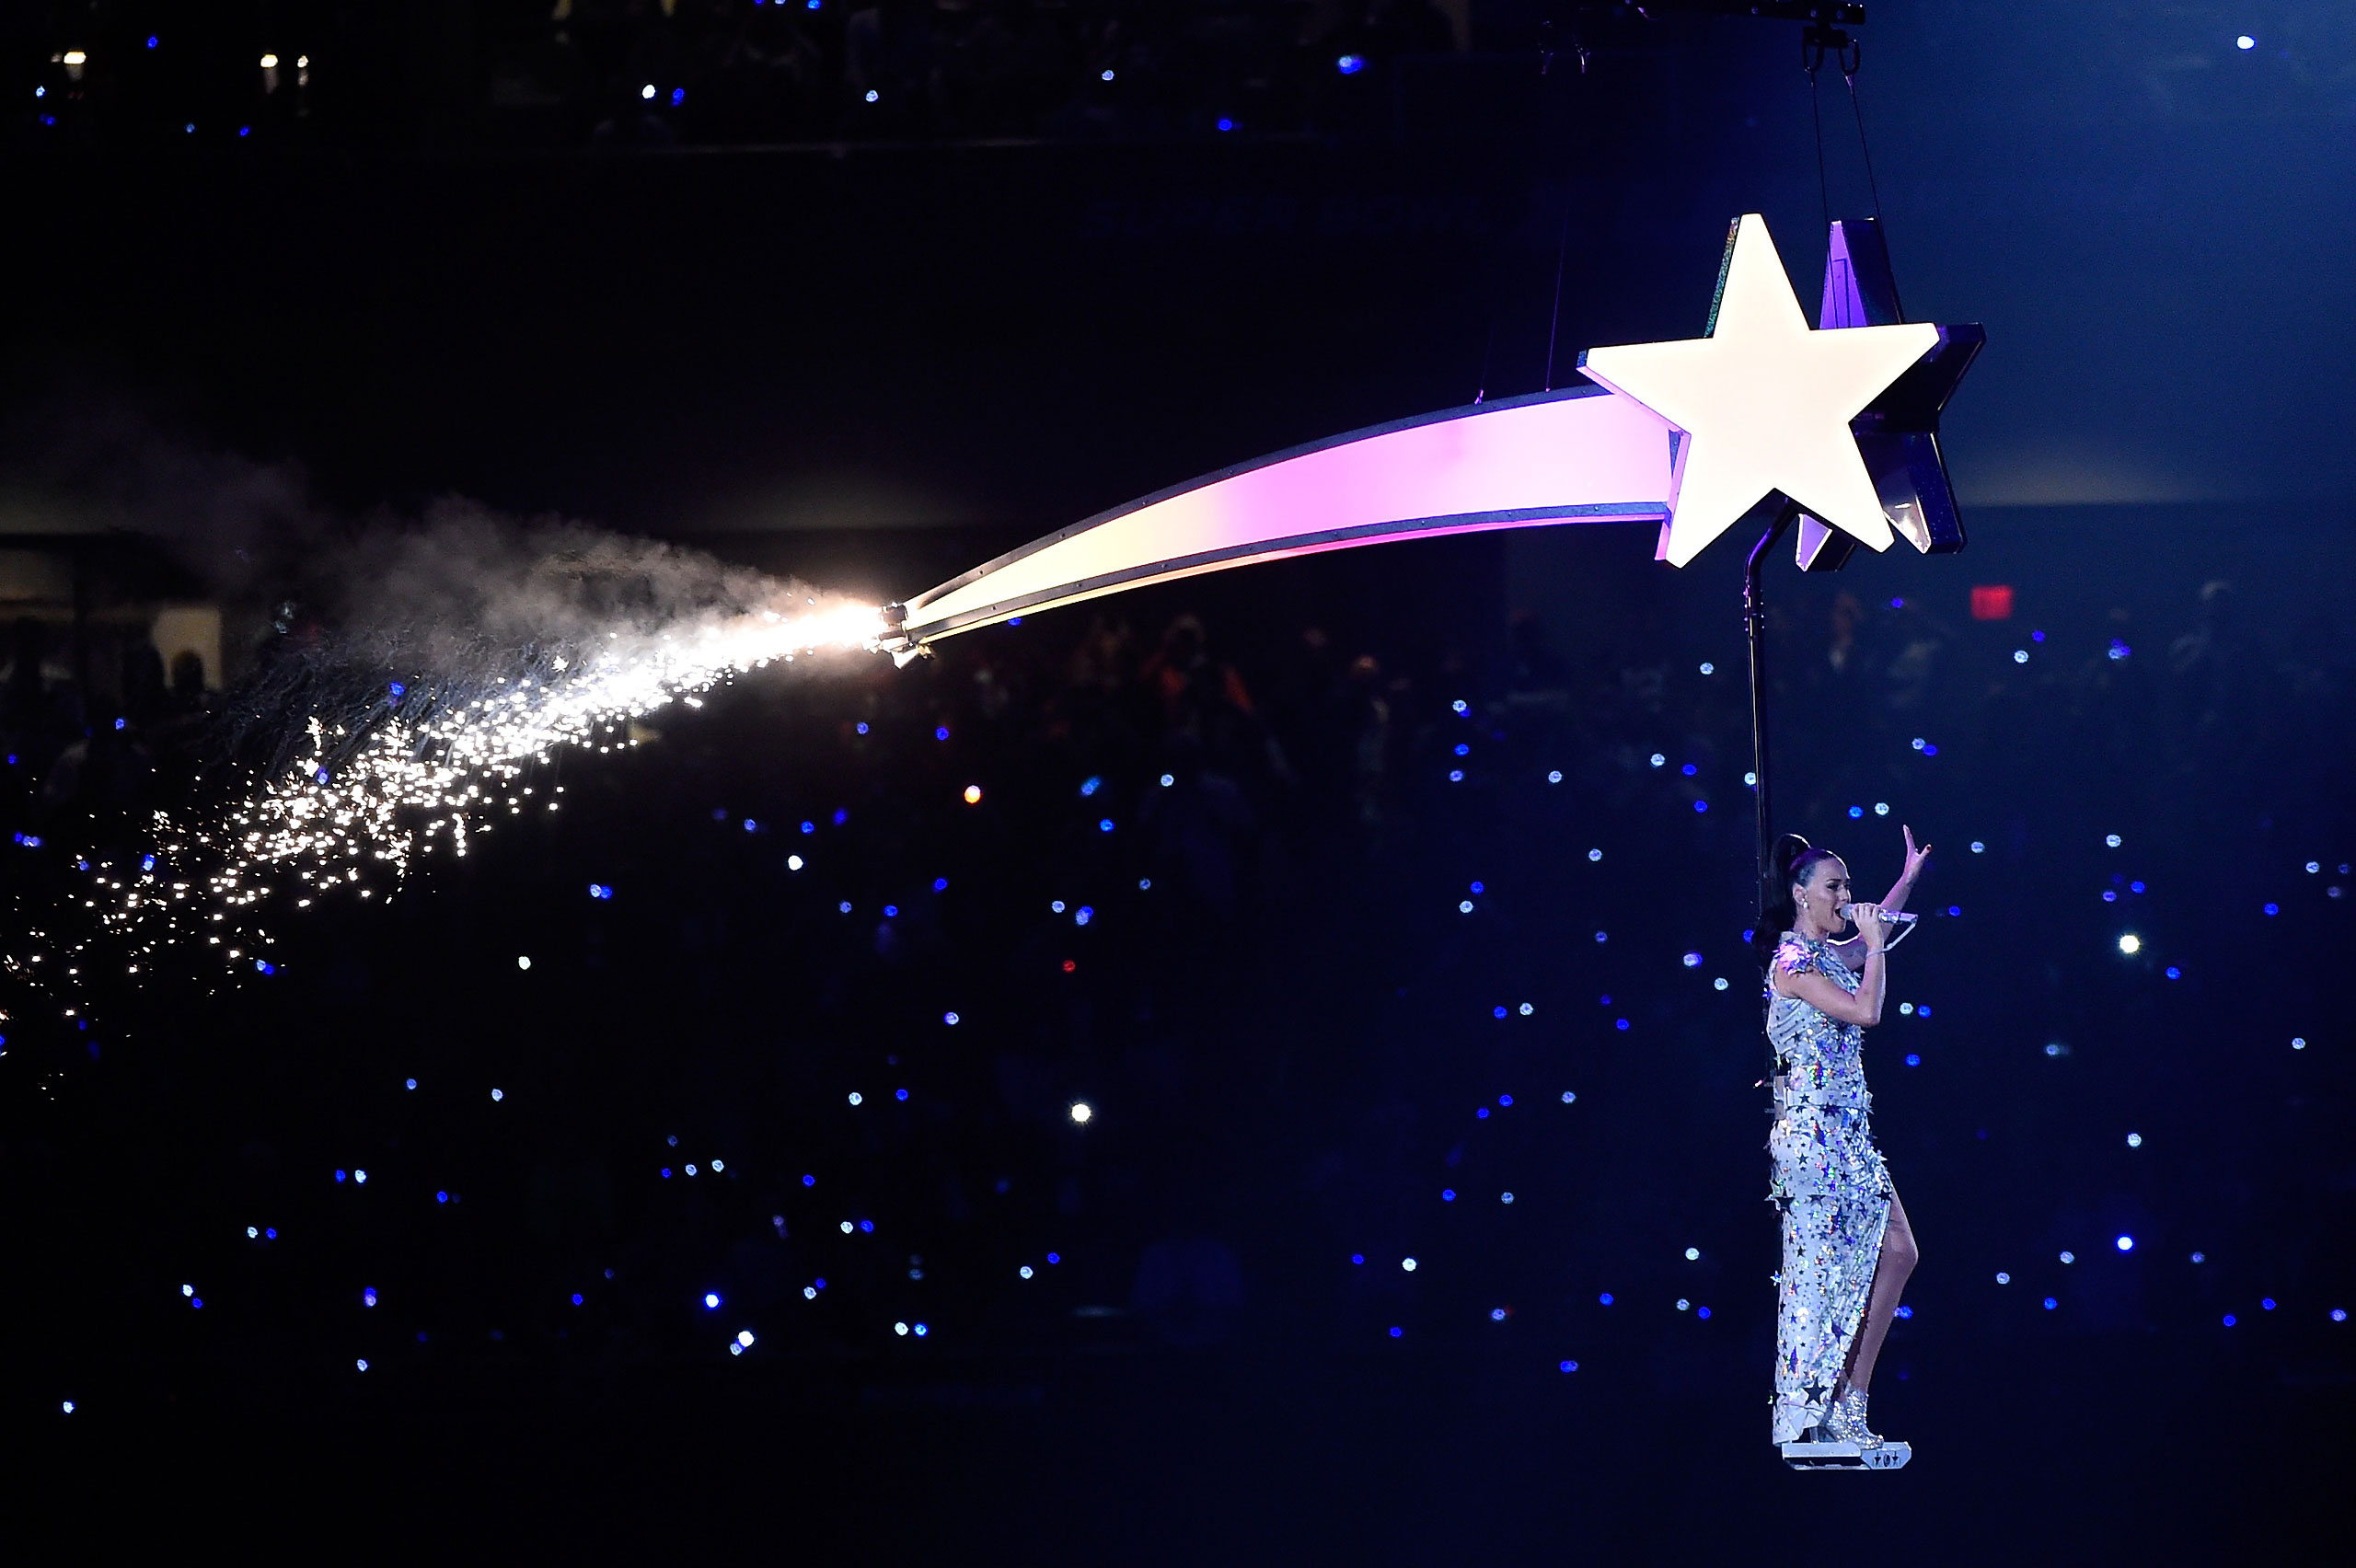 Katy Perry performs during the Pepsi Super Bowl XLIX Halftime Show at University of Phoenix Stadiumon Feb. 1, 2015 in Glendale, Ariz.